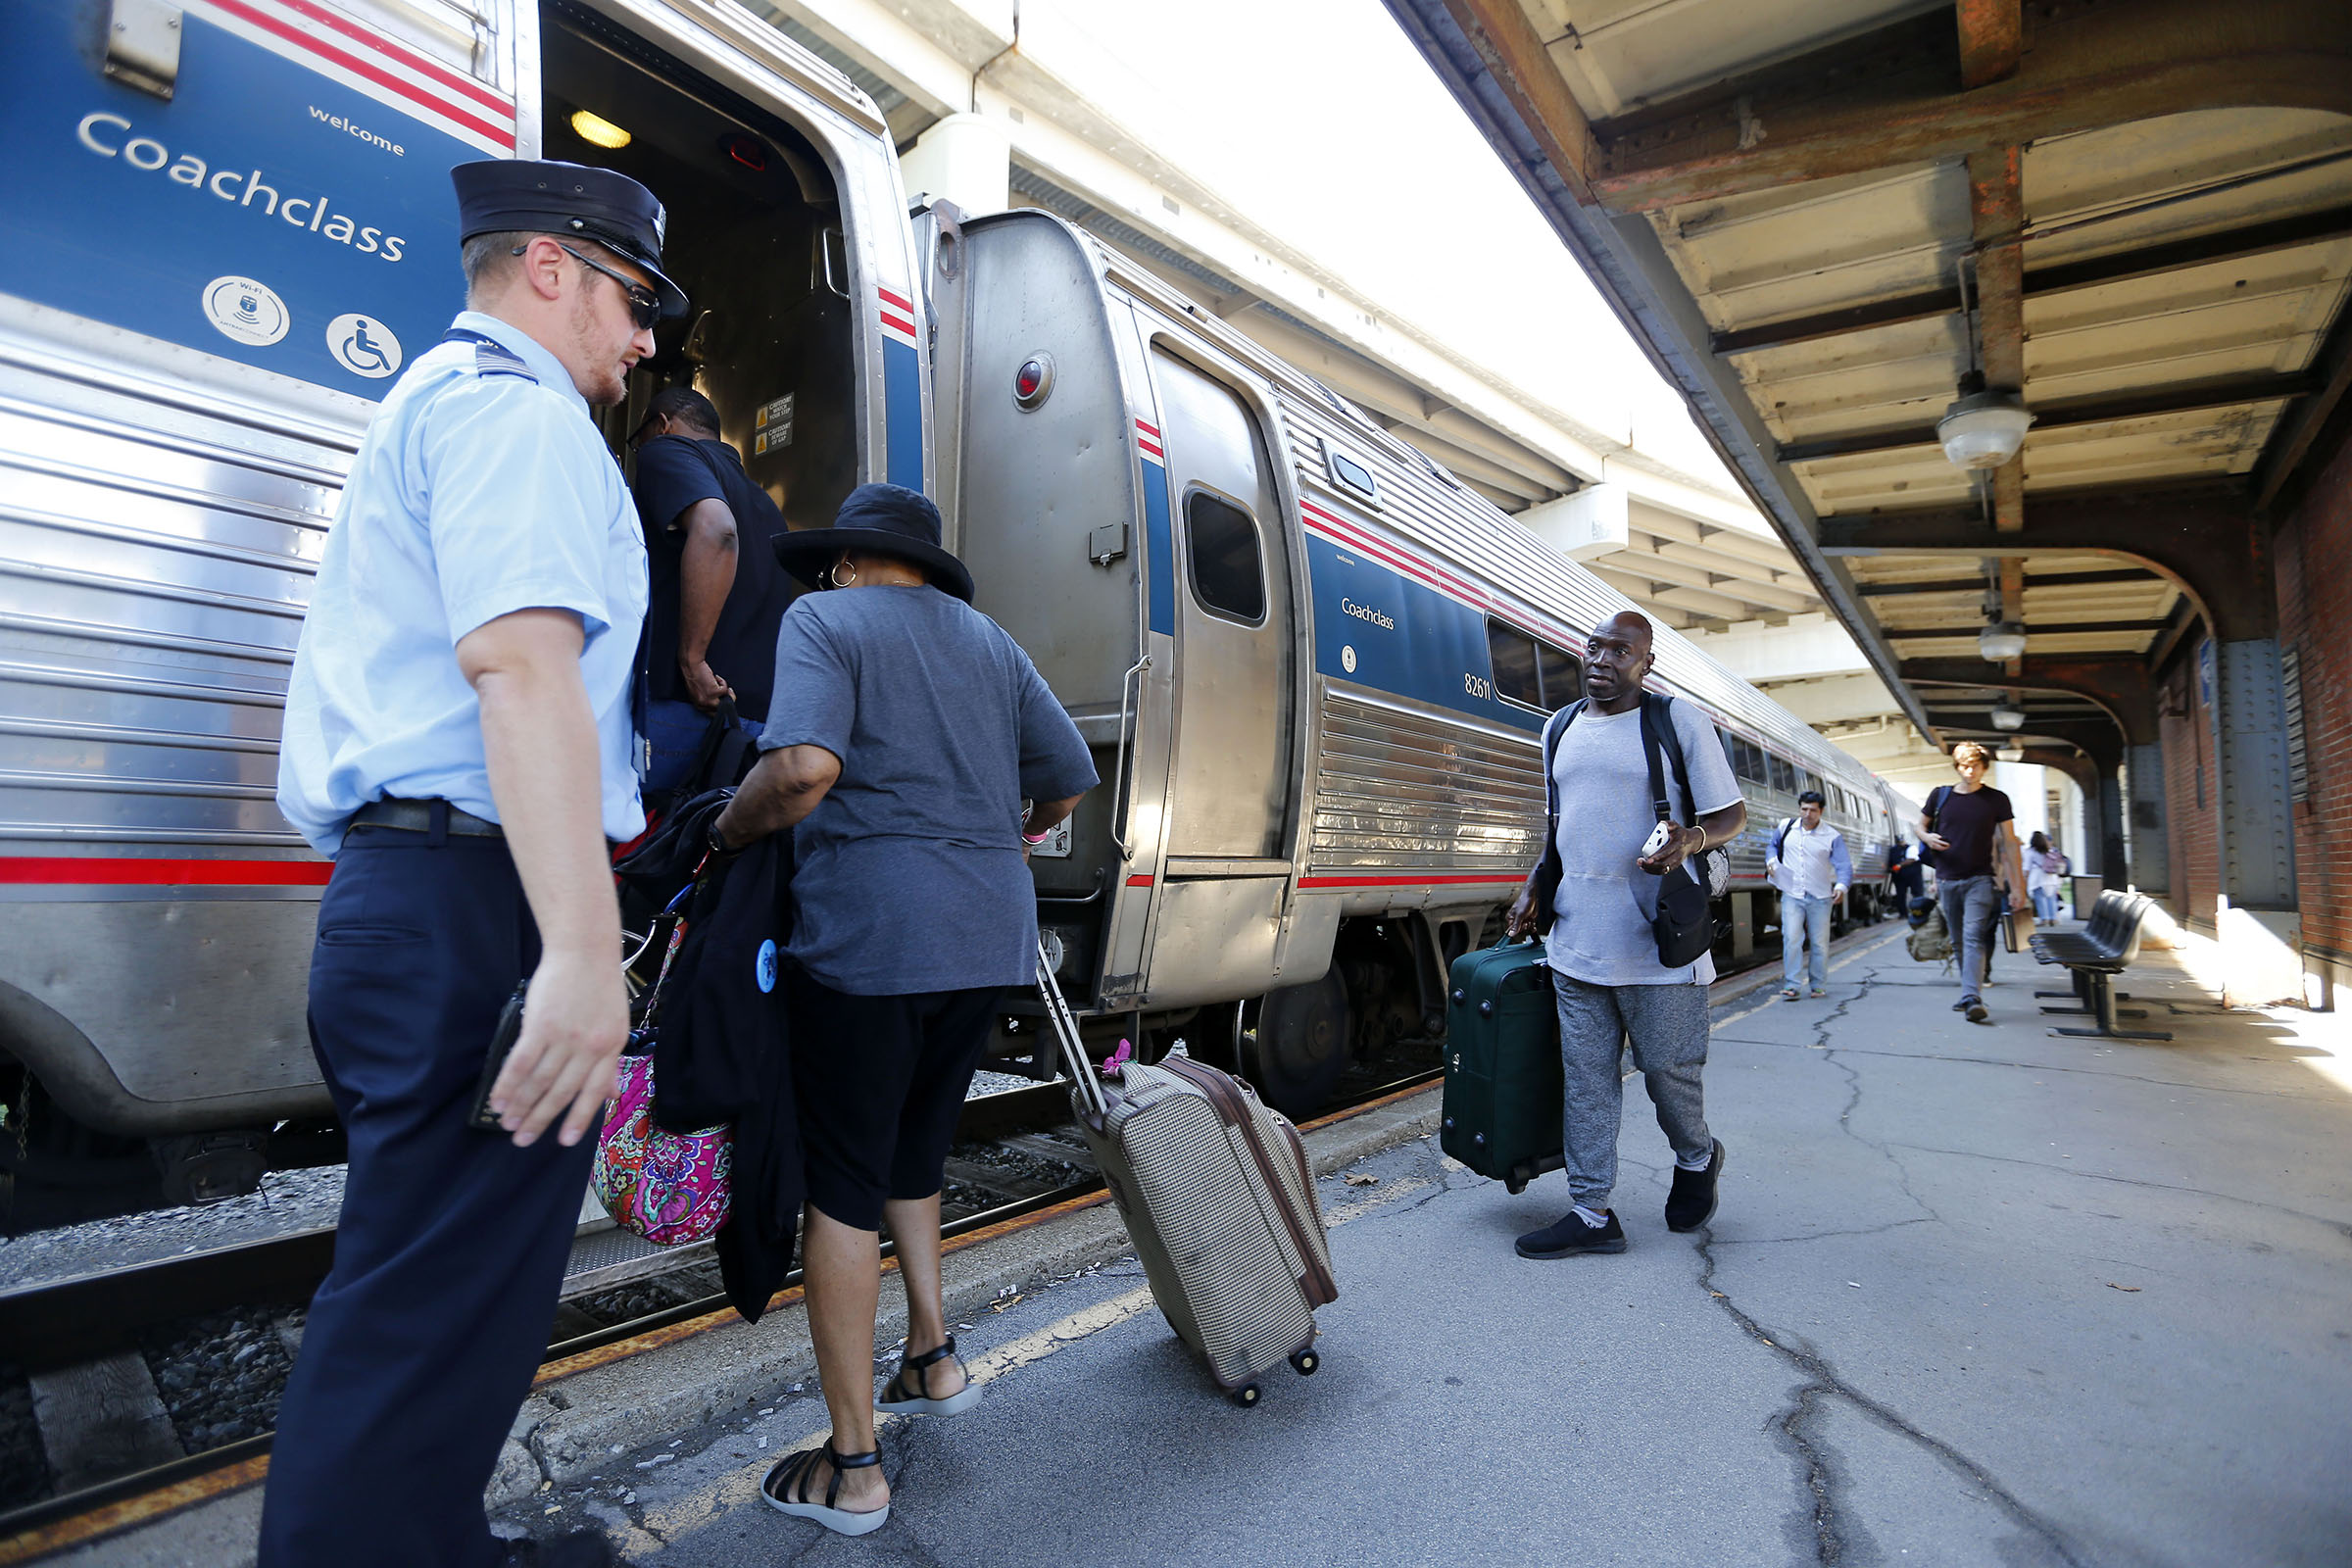 People board an Amtrak train at the Exchange St. station in Buffalo Tuesday, Sept. 20, 2016. (Mark Mulville/Buffalo News)